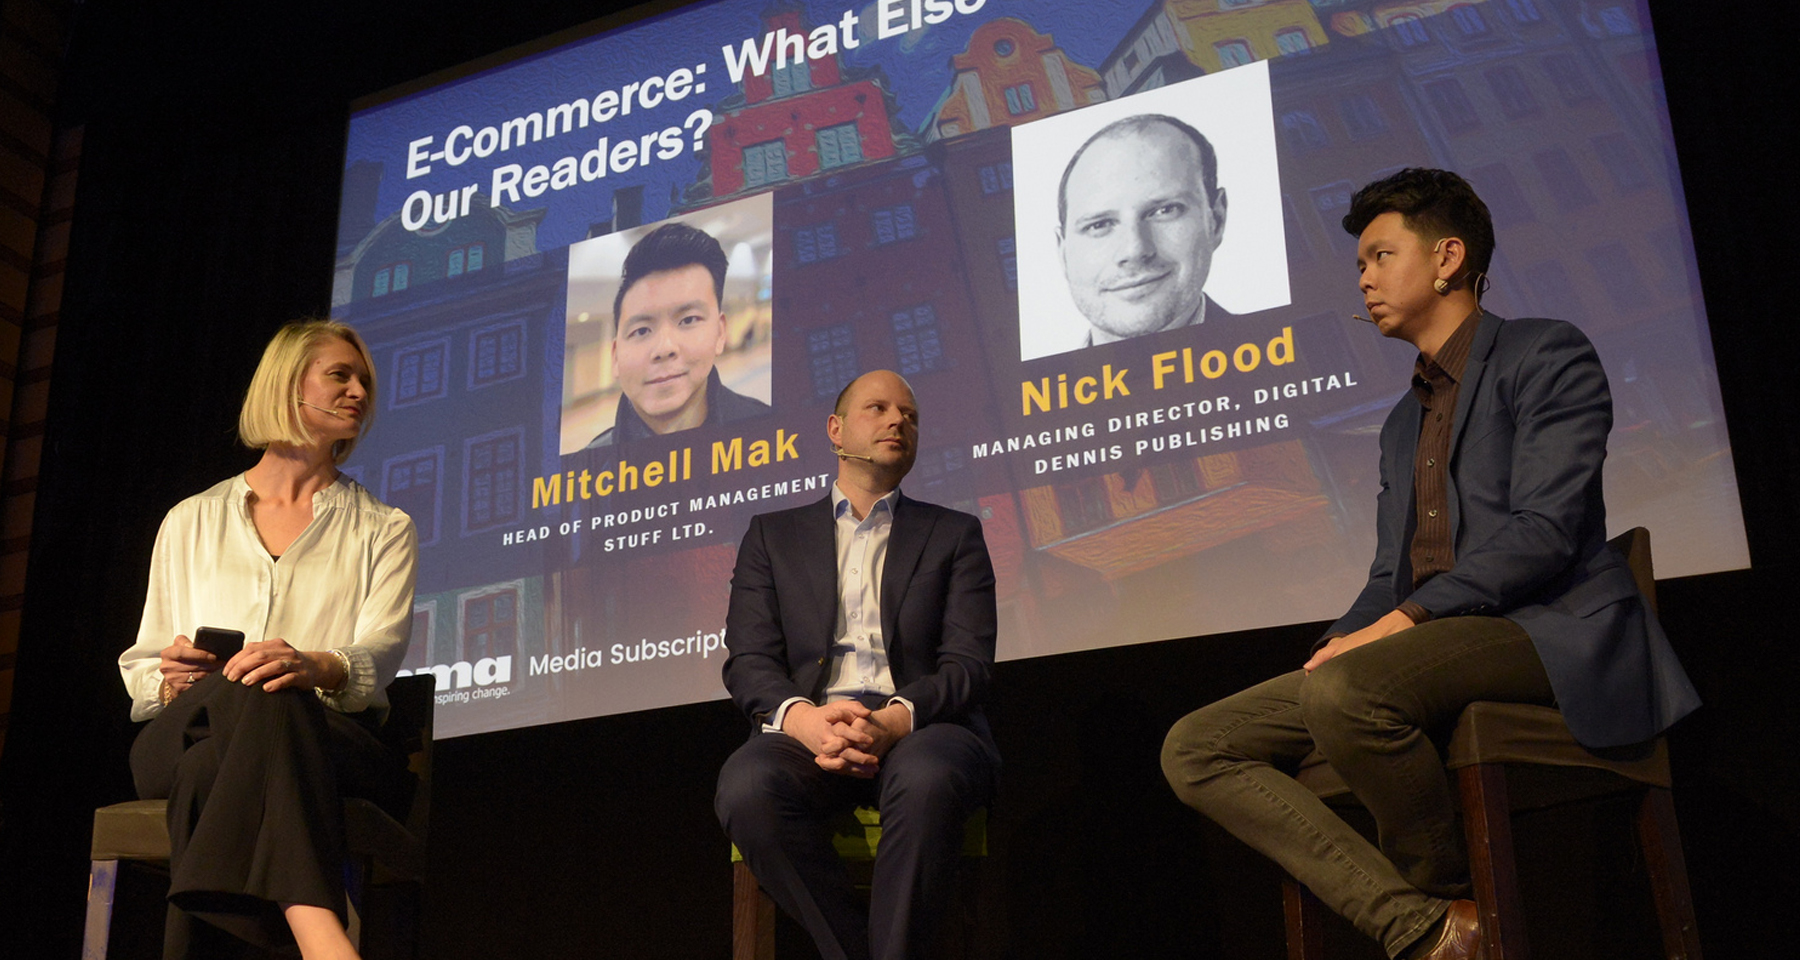 Stuff, Dennis Publishing share e-commerce lessons learned